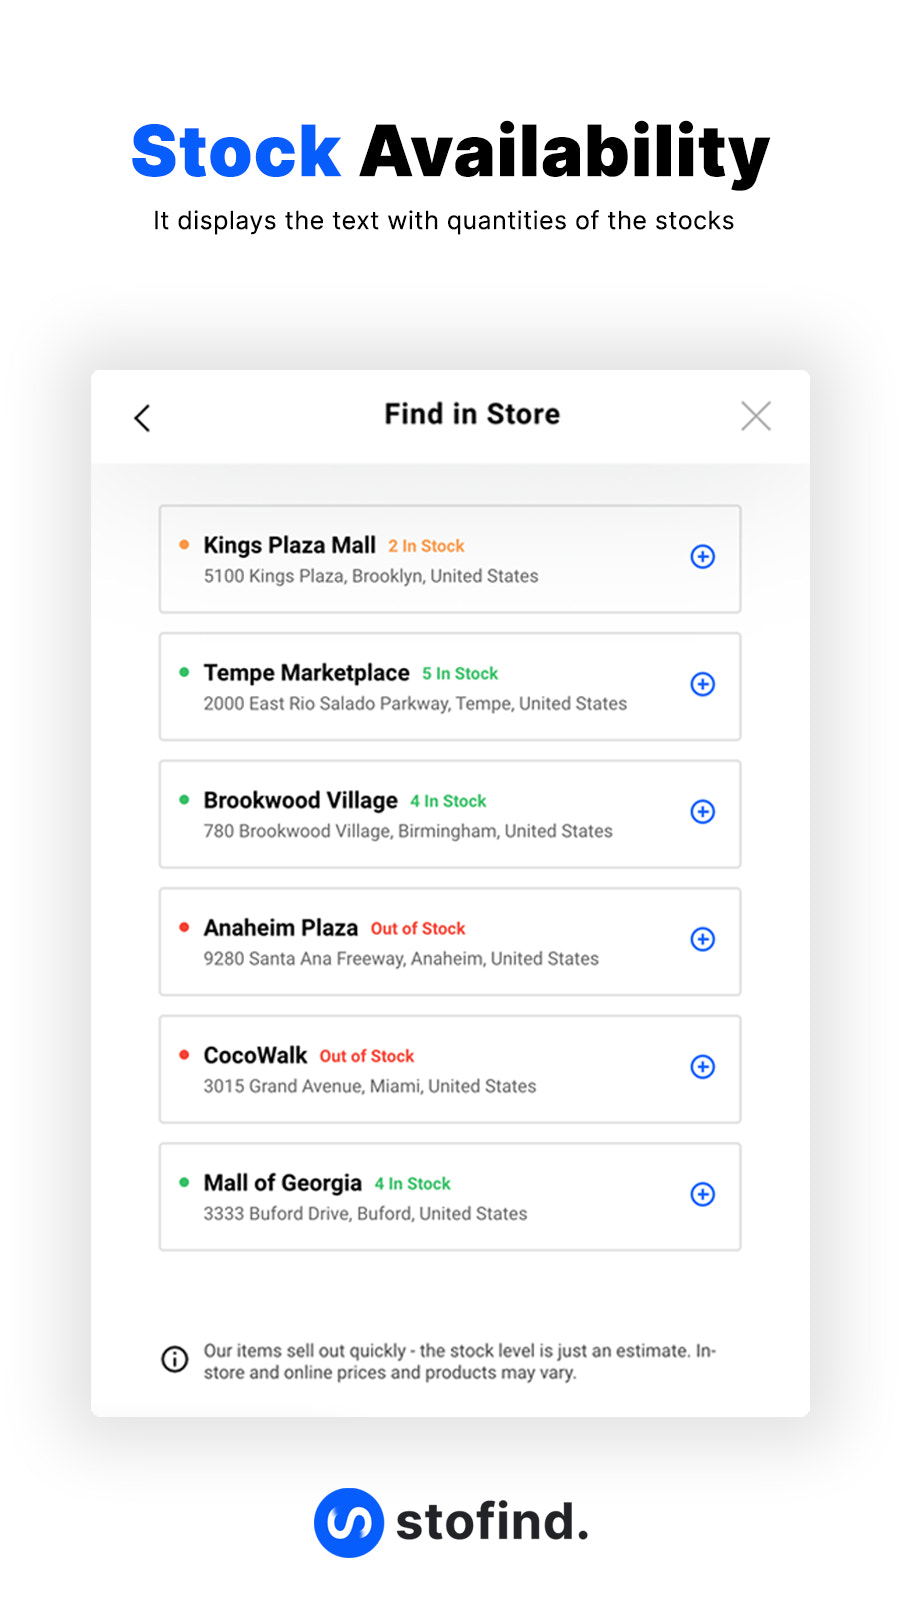 Stock availability with the quantity of the stock on mobile